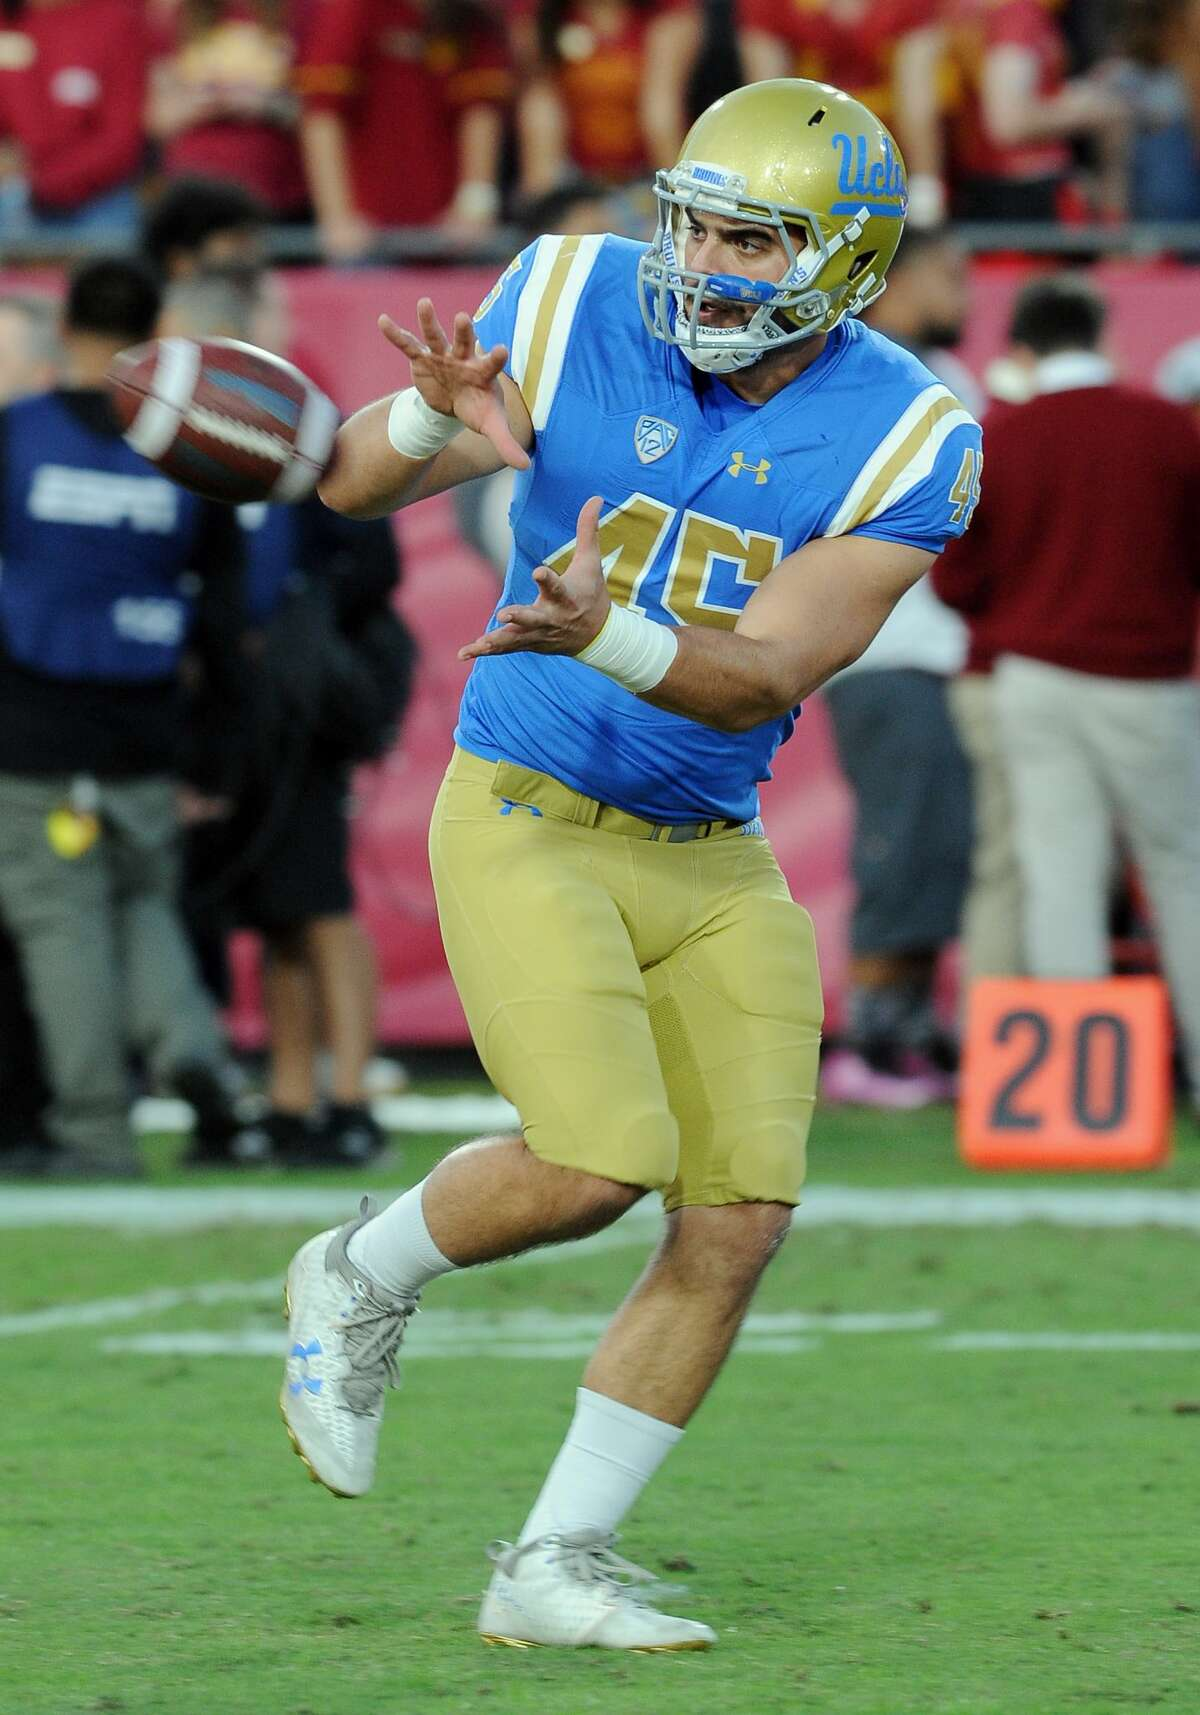 LOS ANGELES, CA - NOVEMBER 18: UCLA Bruins running back Giovanni Gentosi (45) catches a pass during pre-game warmups before a game against the USC Trojans, on November 18, 2017, played at the Los Angeles Memorial Coliseum in Los Angeles, CA. (Photo by John Cordes/Icon Sportswire via Getty Images)